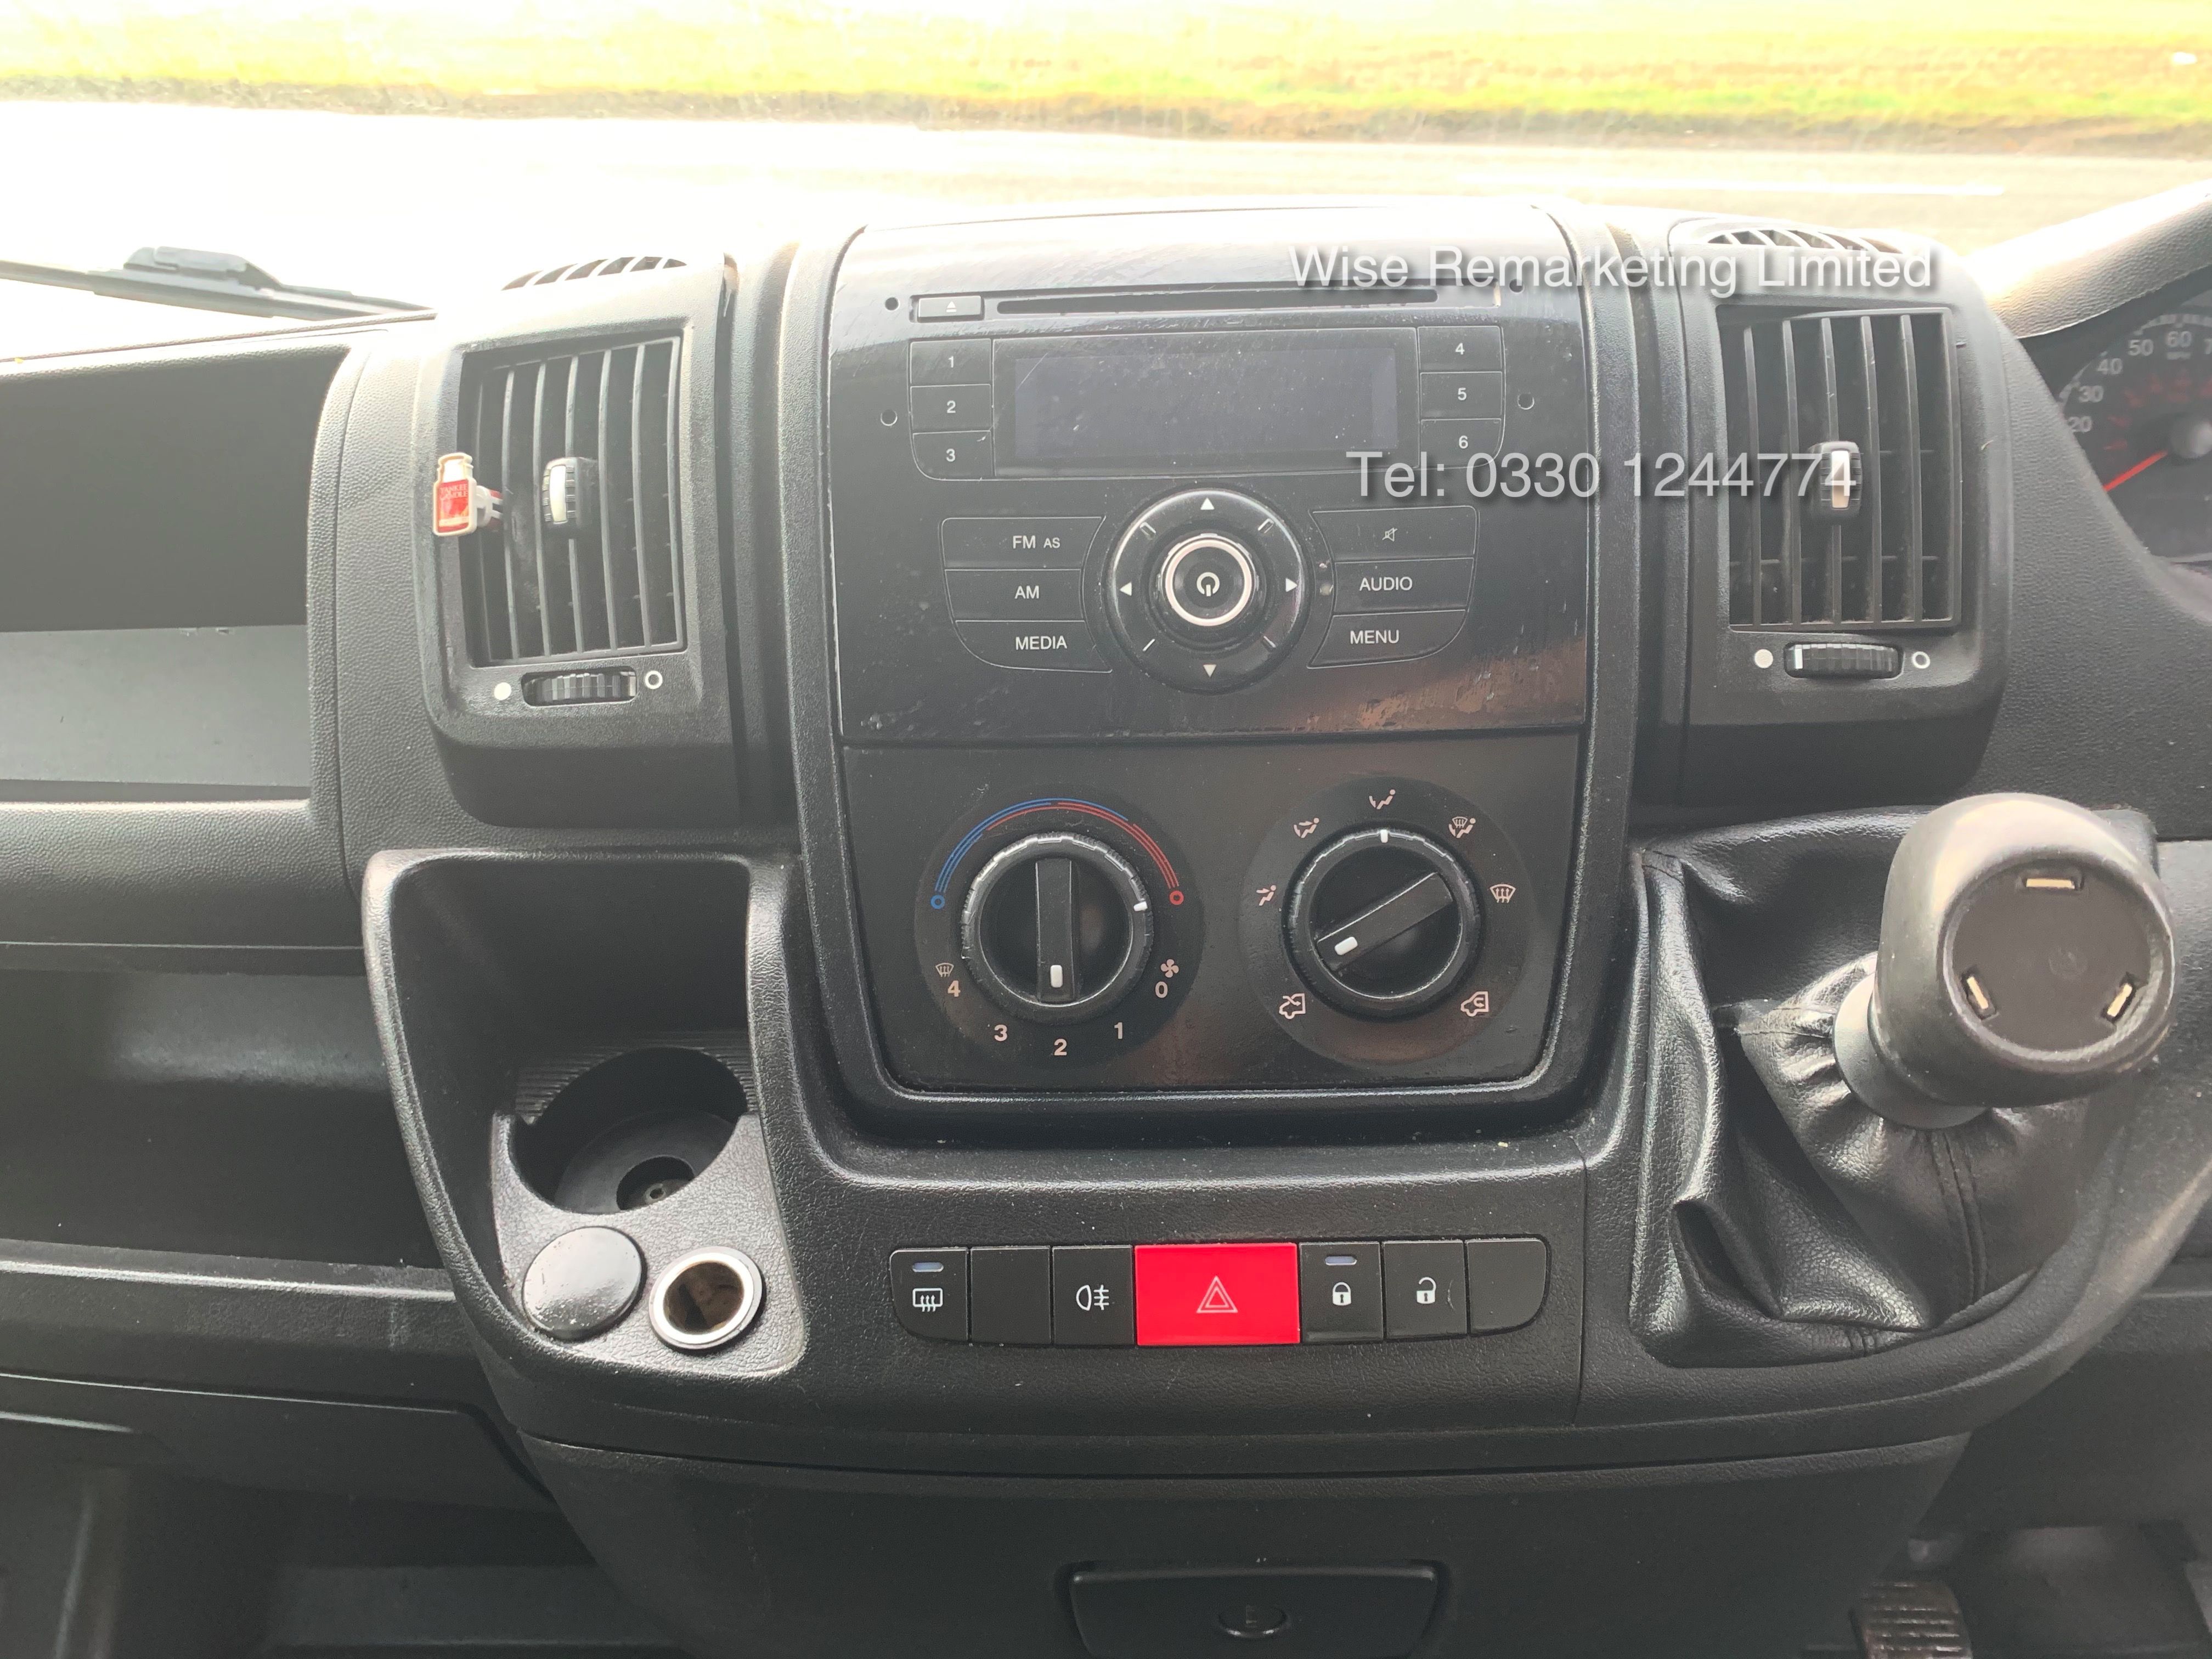 Peugeot Boxer 335 2.2 HDi Long Wheel Base( L3H2) 2014 Model - 1 Keeper From New - Image 16 of 17